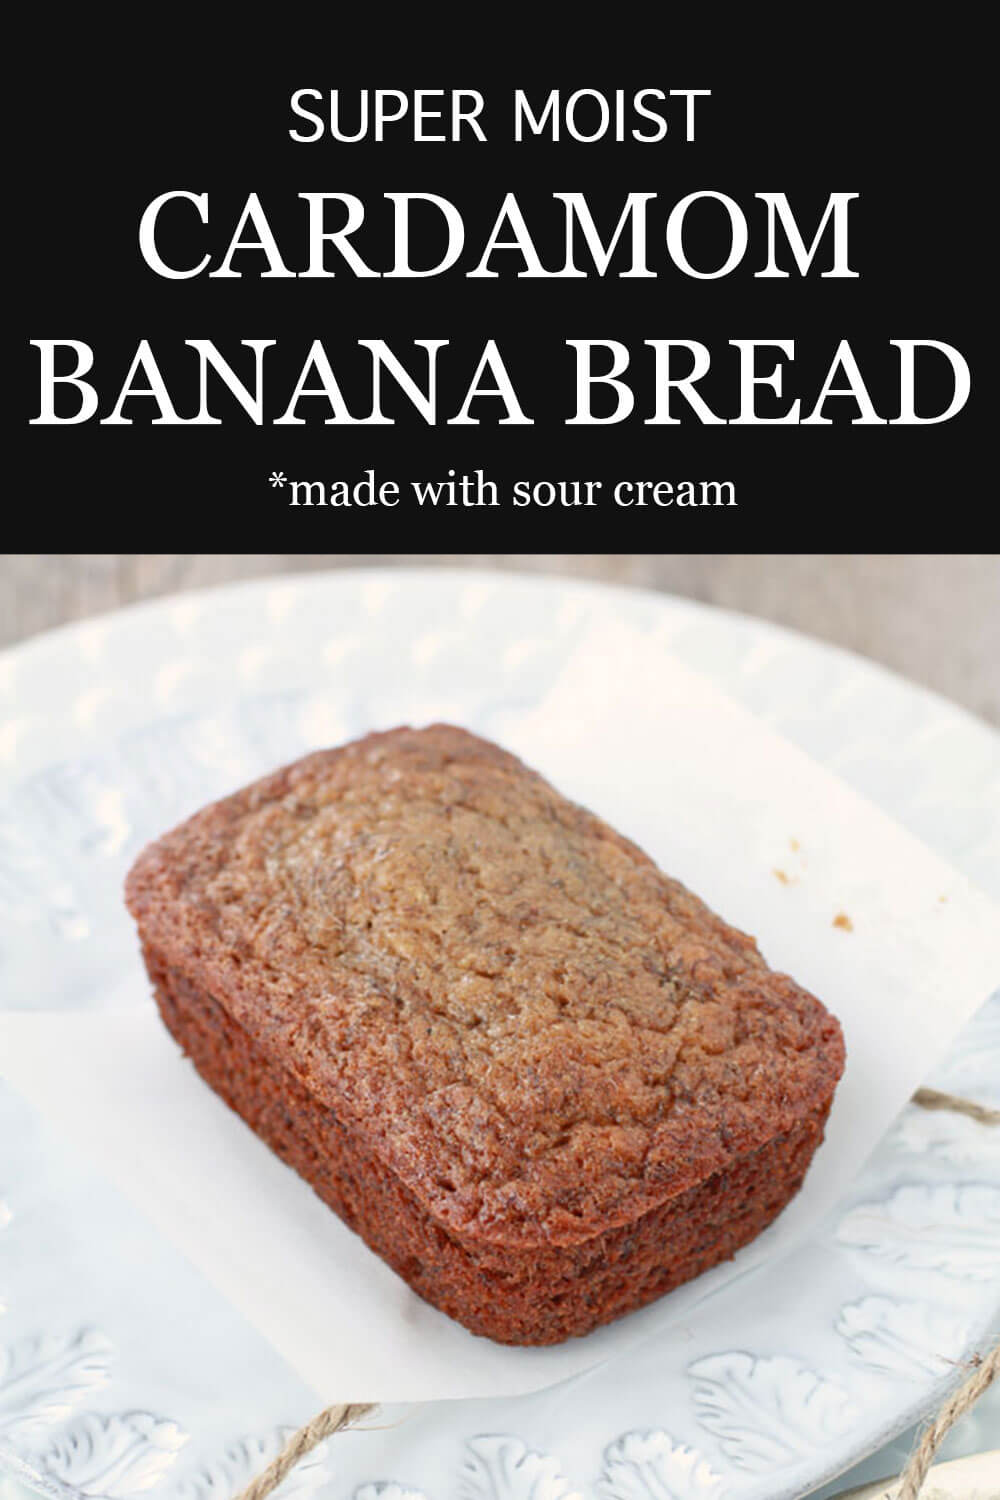 super moist mini cardamom banana bread loaf cake on a plate which was wrapped in parchment paper and tied with twine